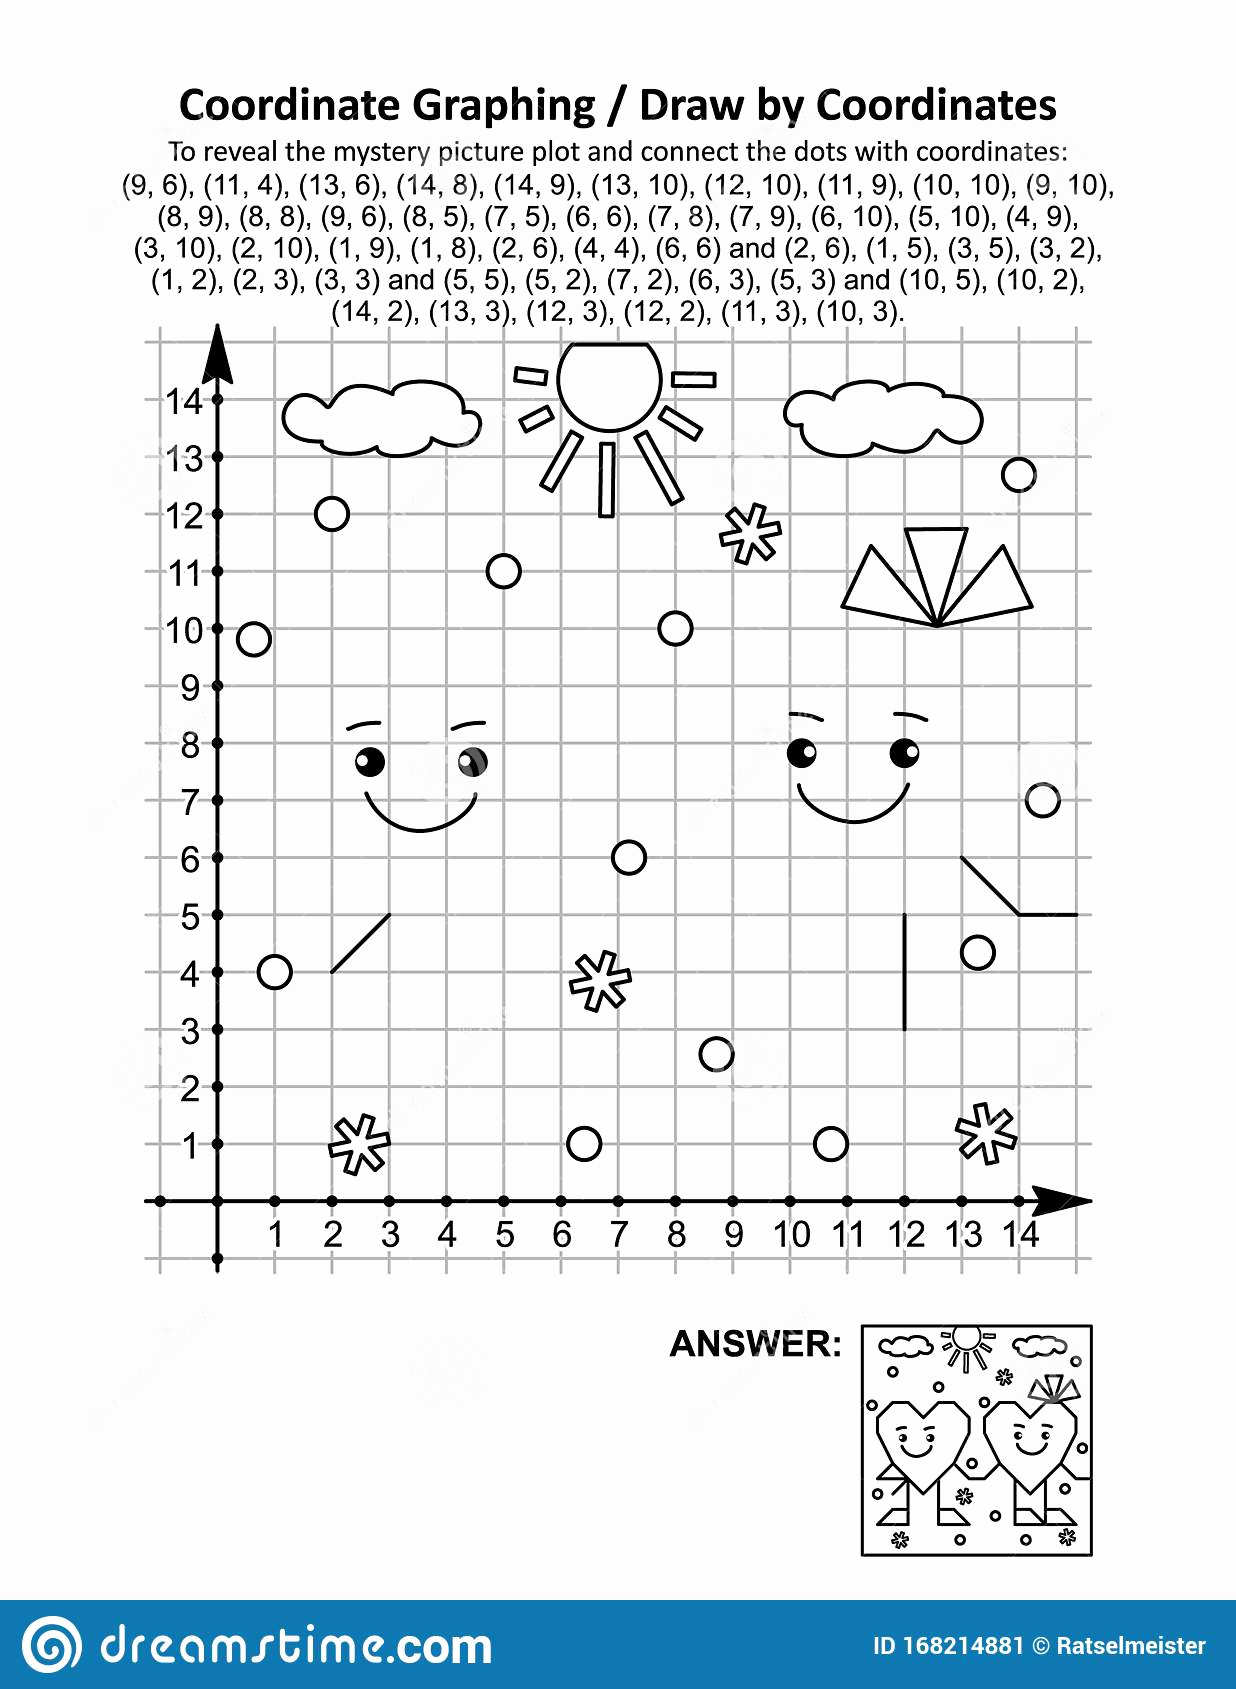 Valentine Day Coordinate Graphing Worksheets Luxury Coordinate Graphing Draw by Coordinates Math